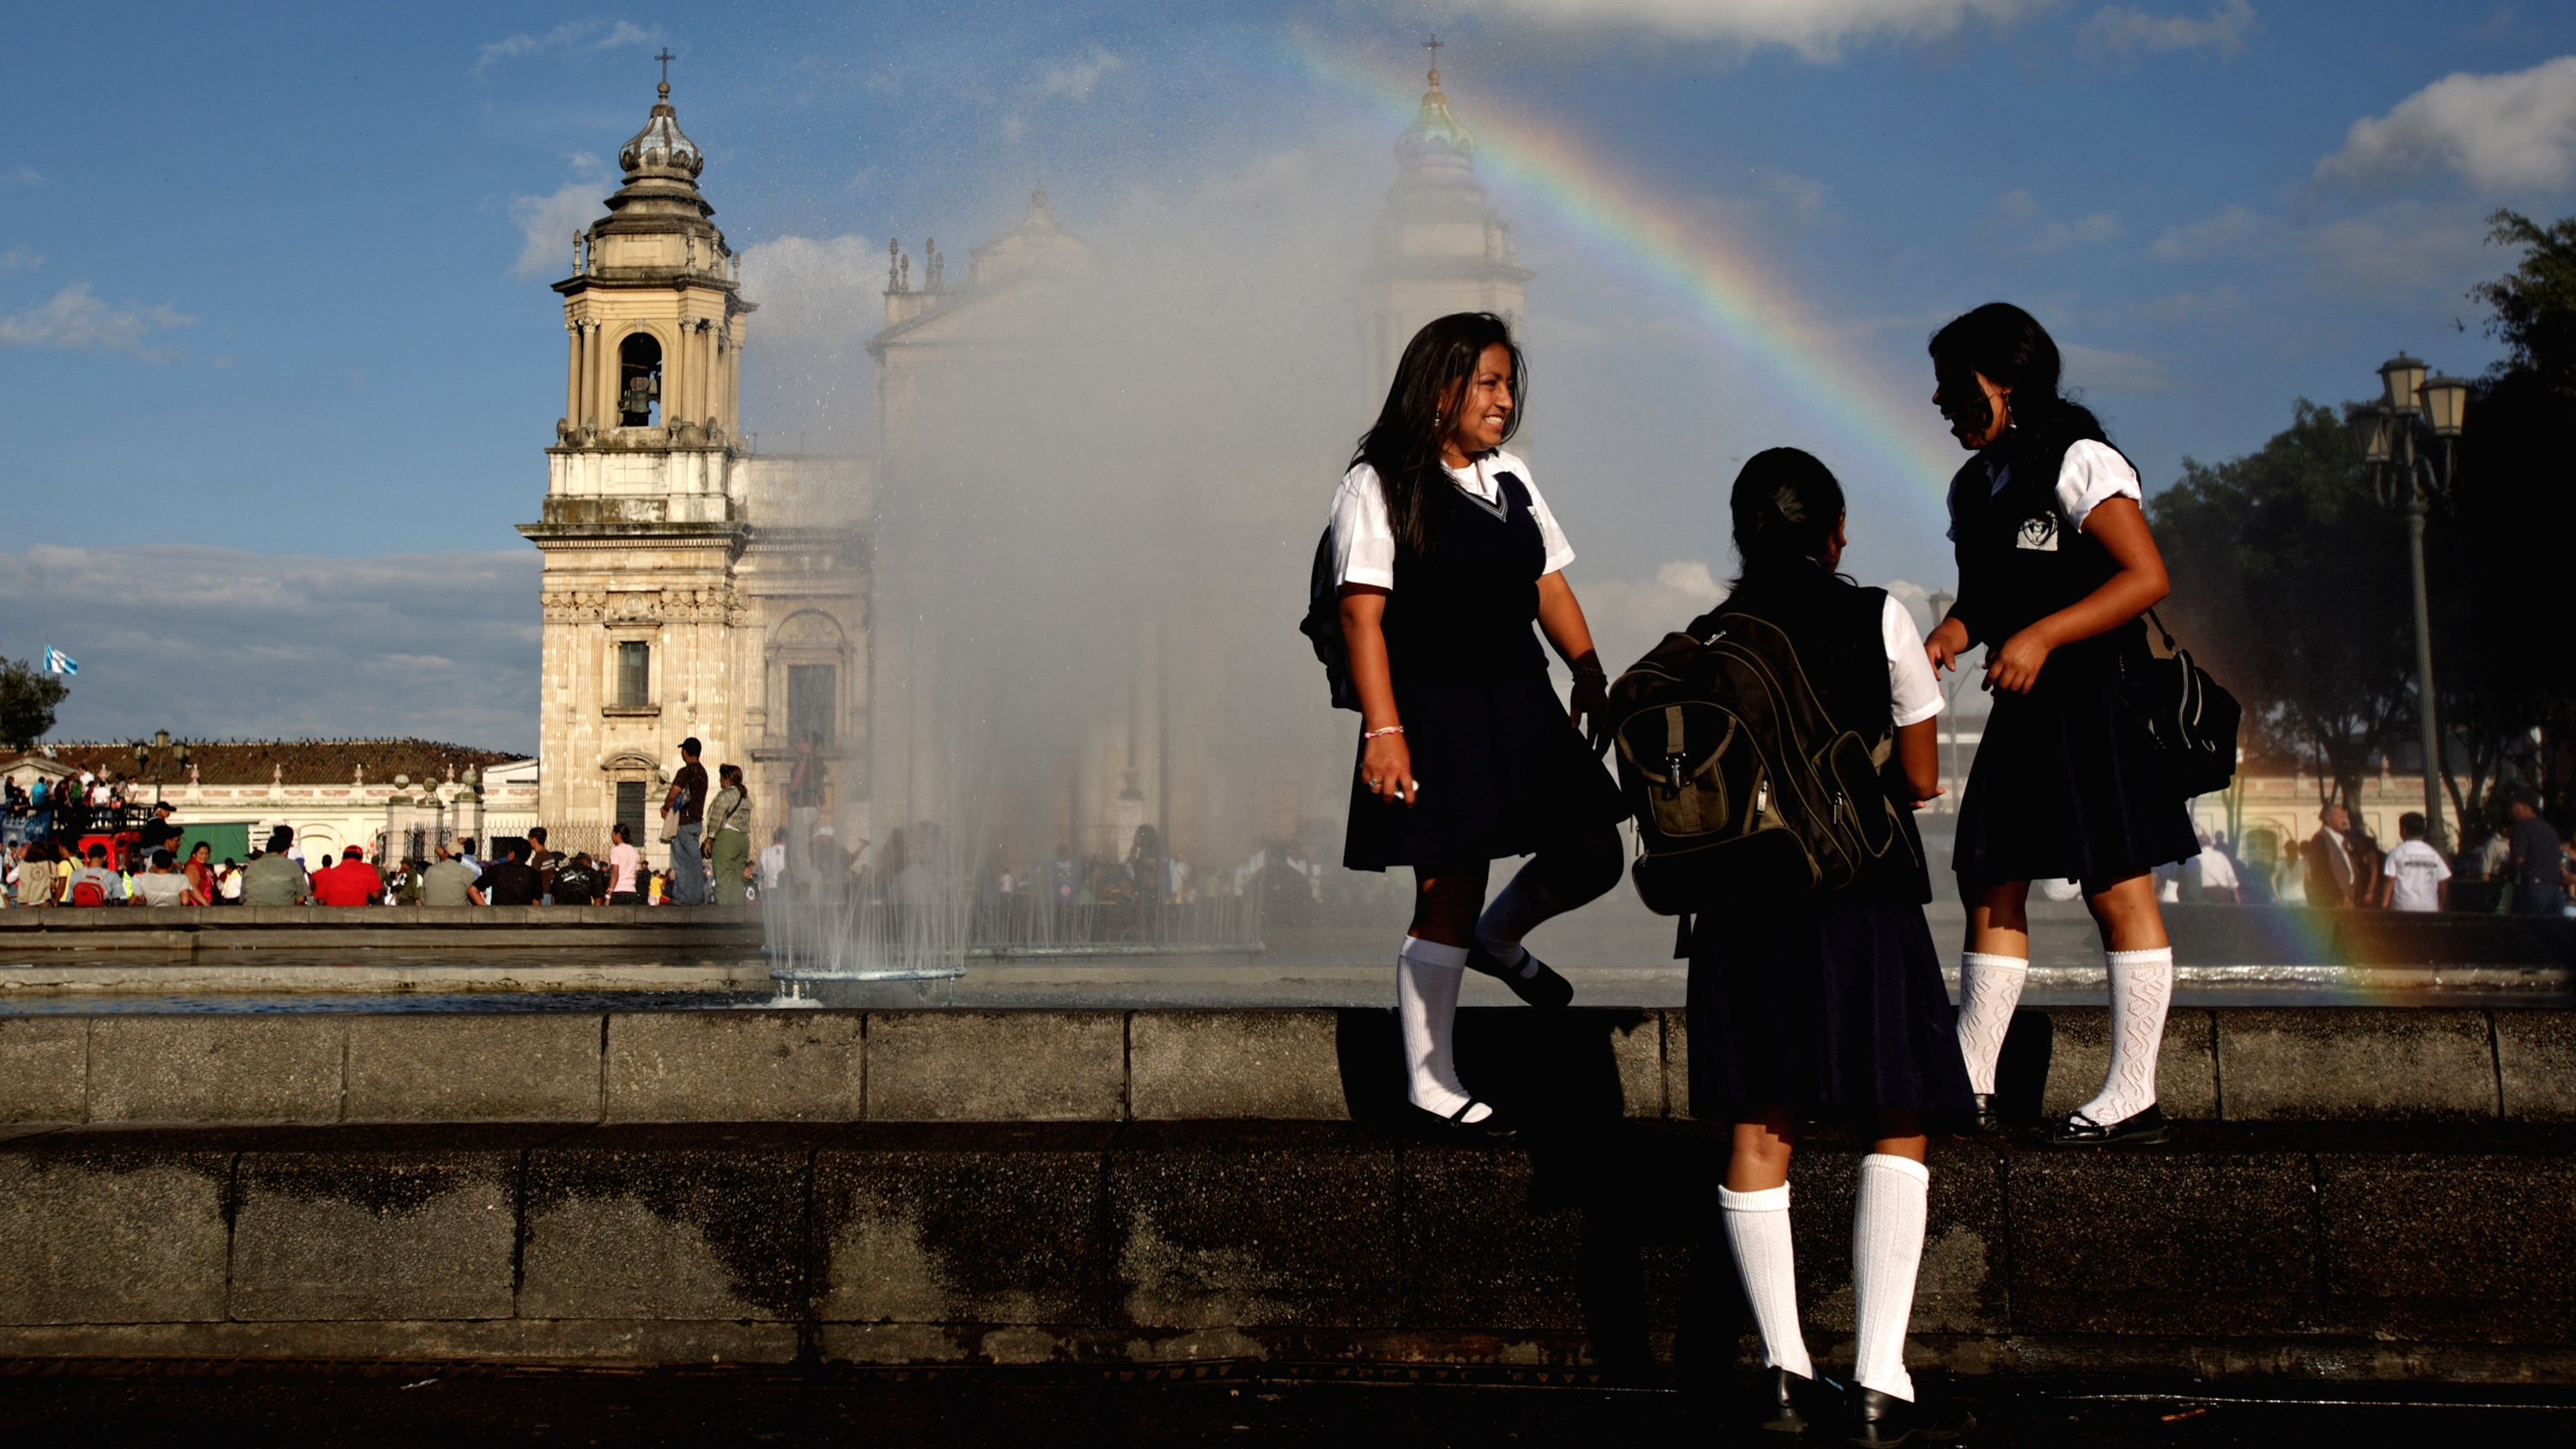 Schoolgirls talk near a fountain at the Parque Central in Guatemala City. In Guatemala, 30% of women are married by the age of 18.